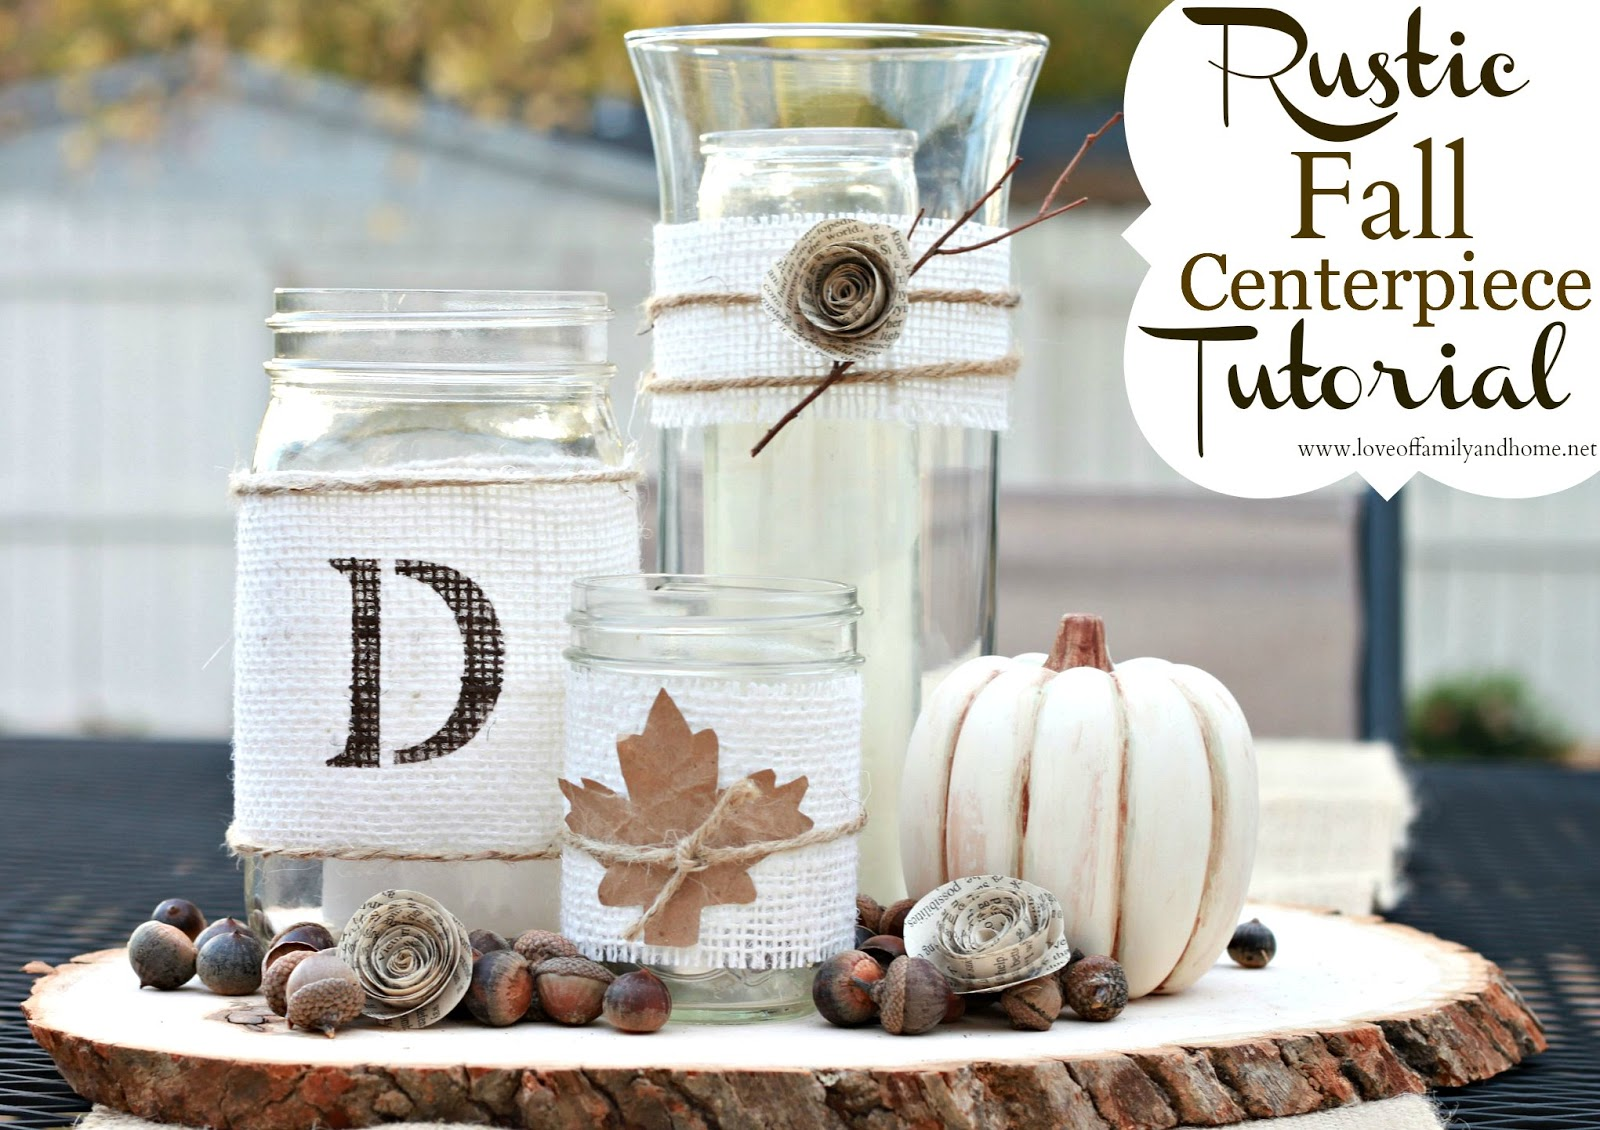 Ideas For Fall Wedding Centerpieces: Rustic Fall Centerpiece Tutorial